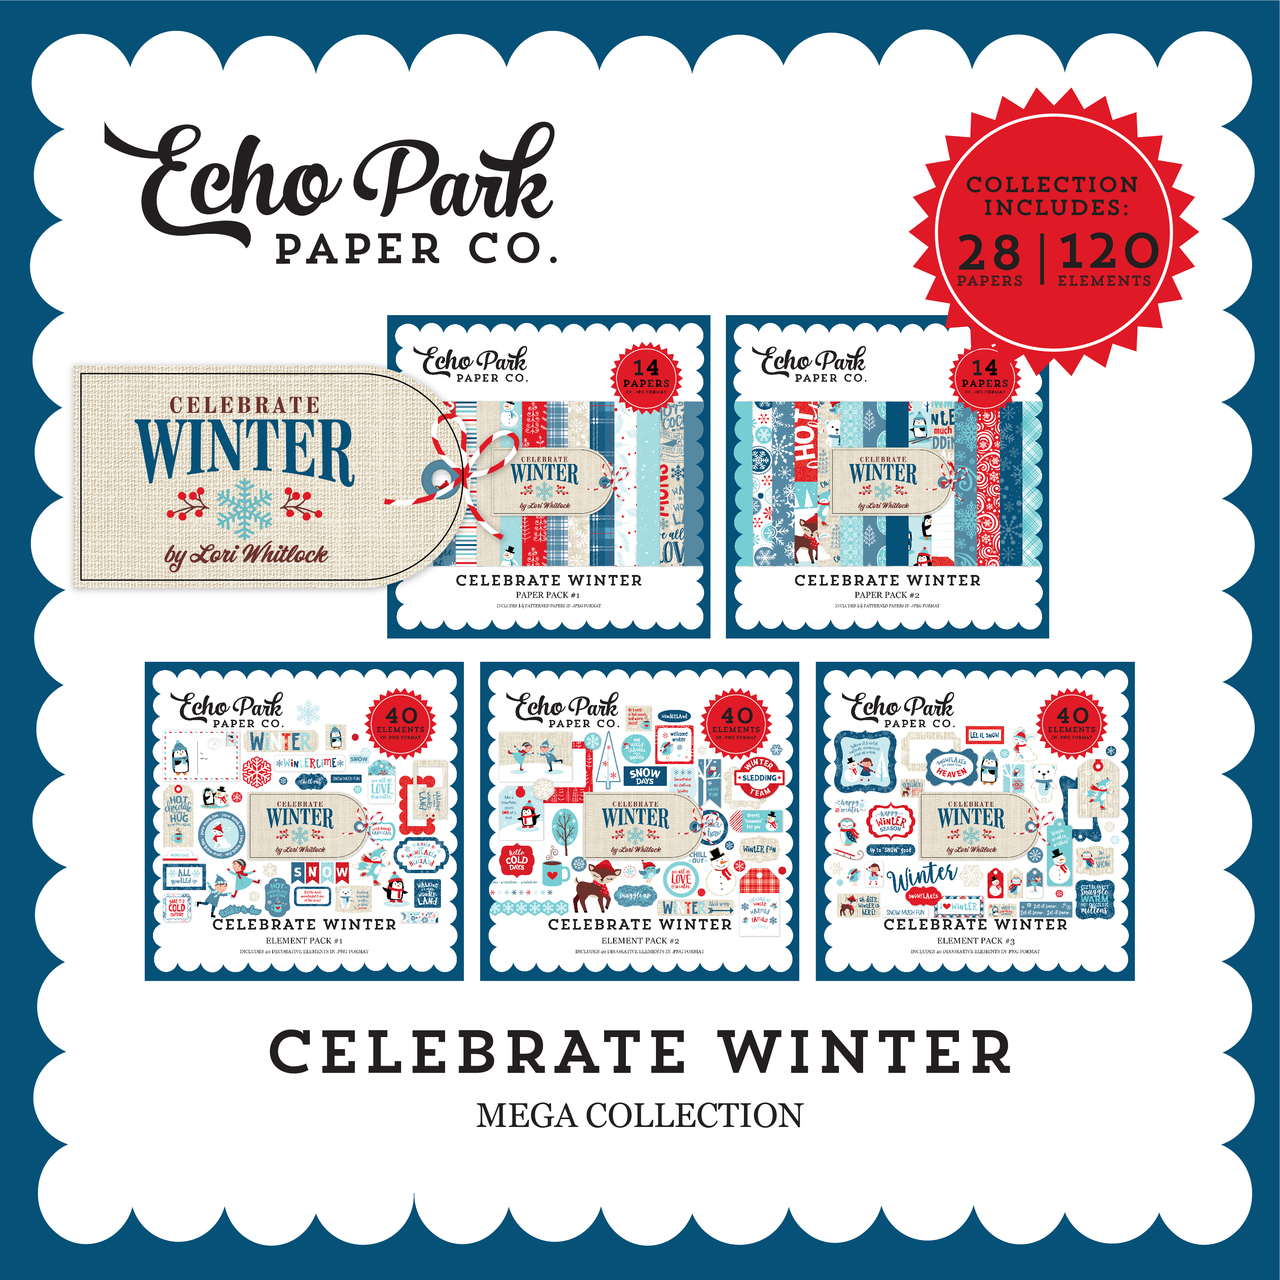 Celebrate Winter Mega Collection